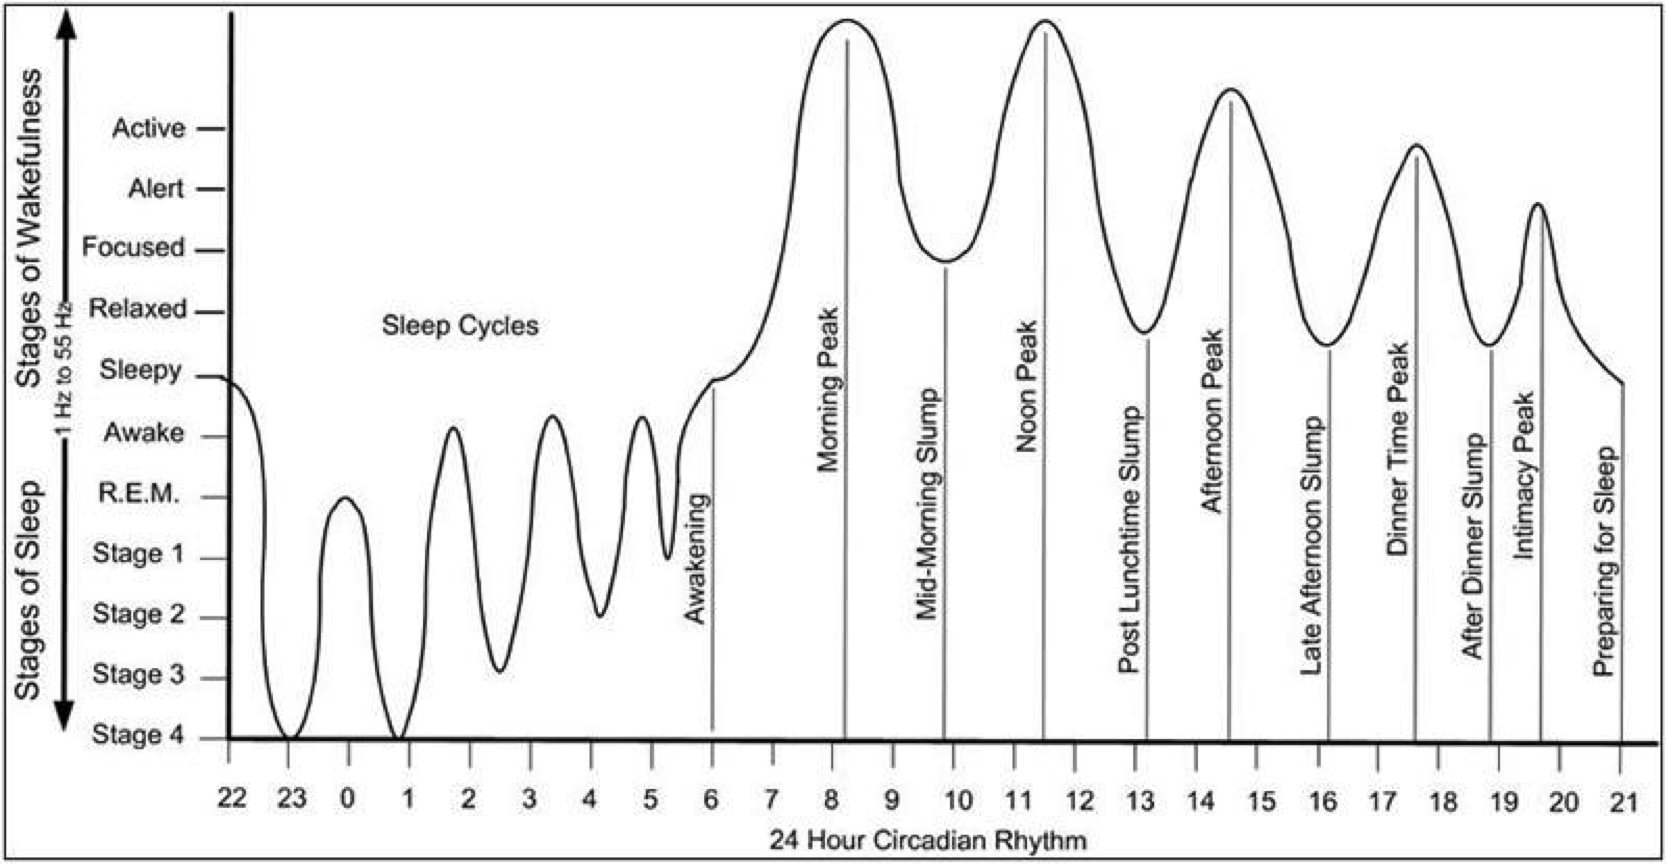 Sleep_Cycles_Chart.png